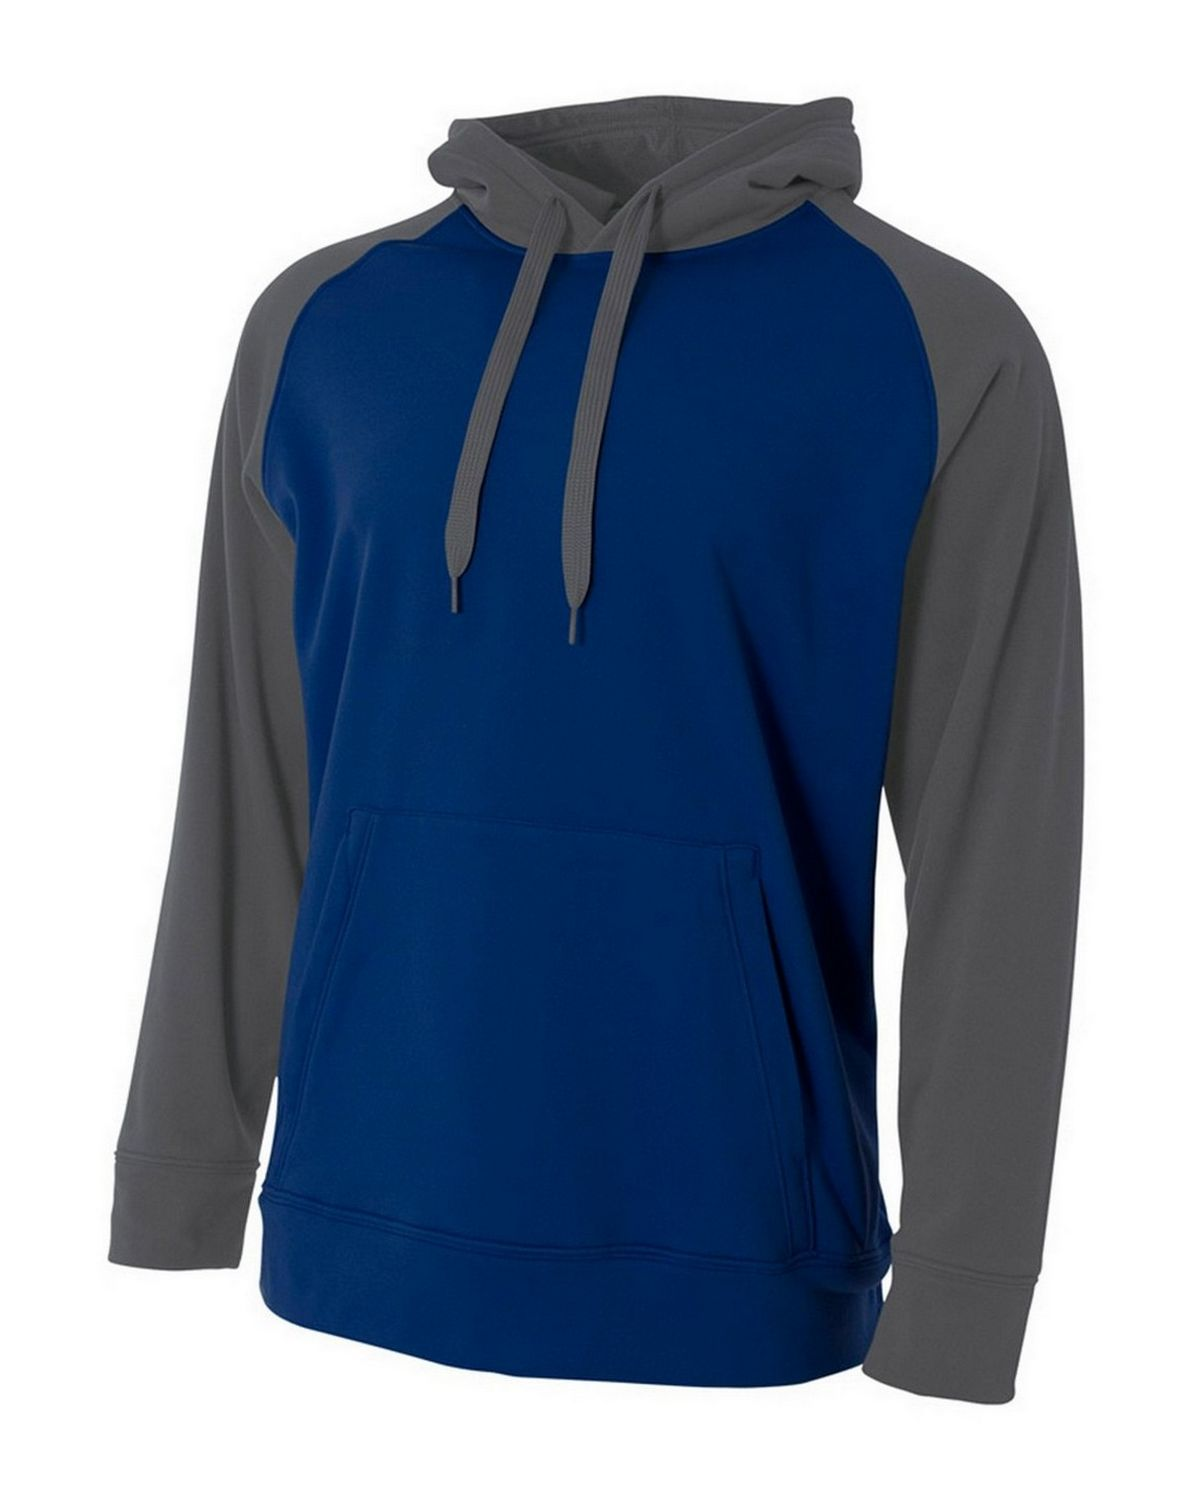 A4 NB4234 Youth Fleece Hoodie - Navy/Graphite - M NB4234